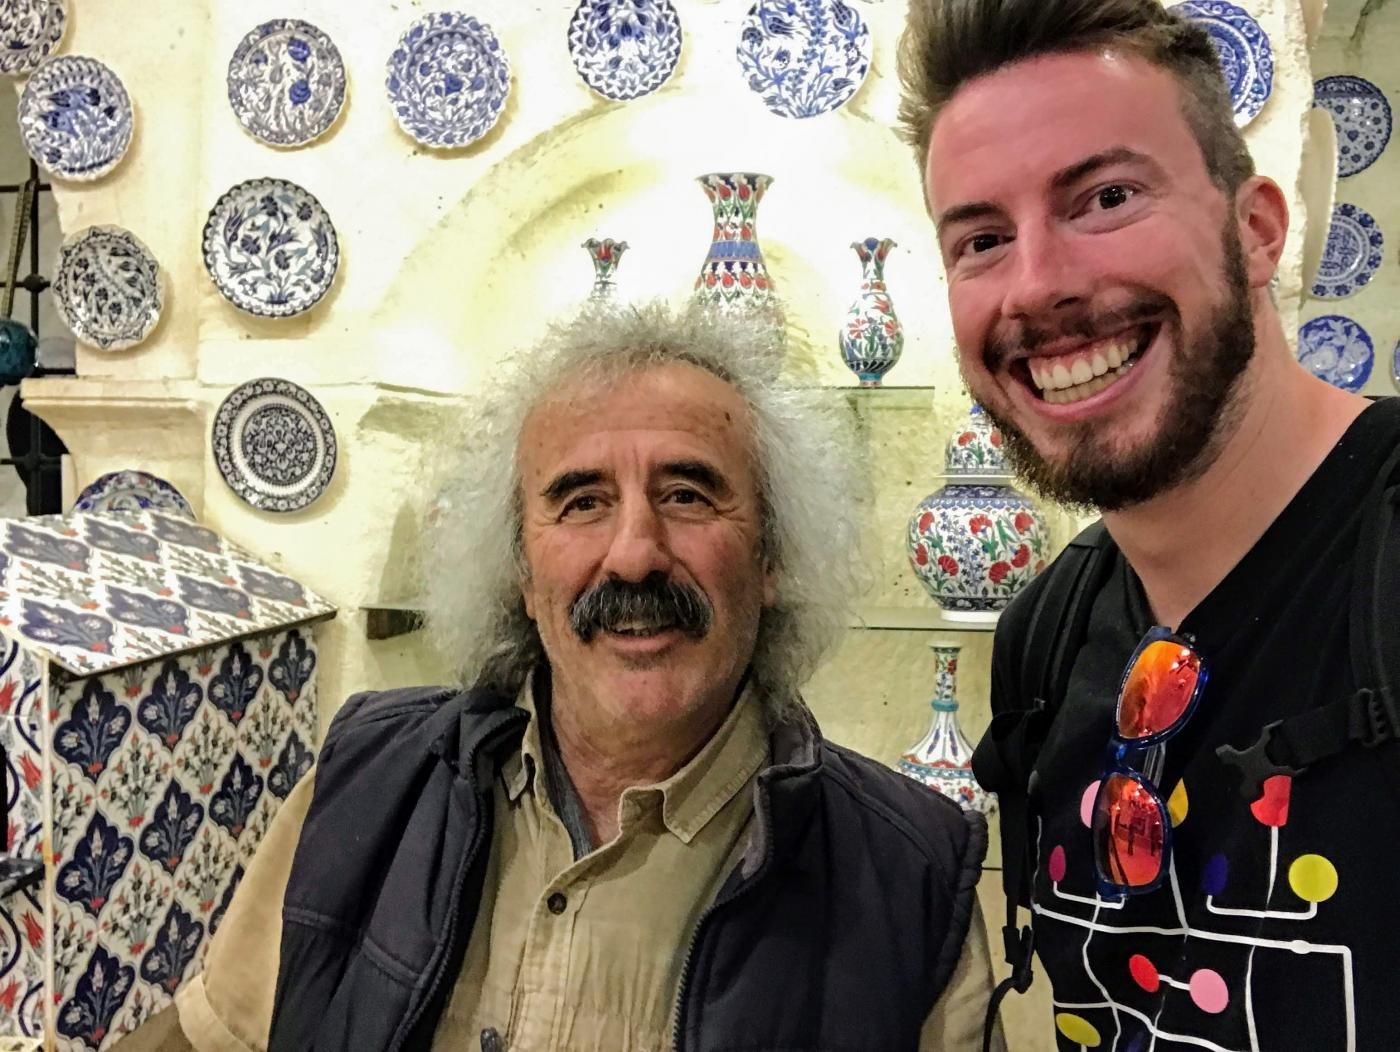 Chez Galip, also known as the creepy hair guy, or the owner of the Avanos Hair Museum, a hair cave in Cappadocia